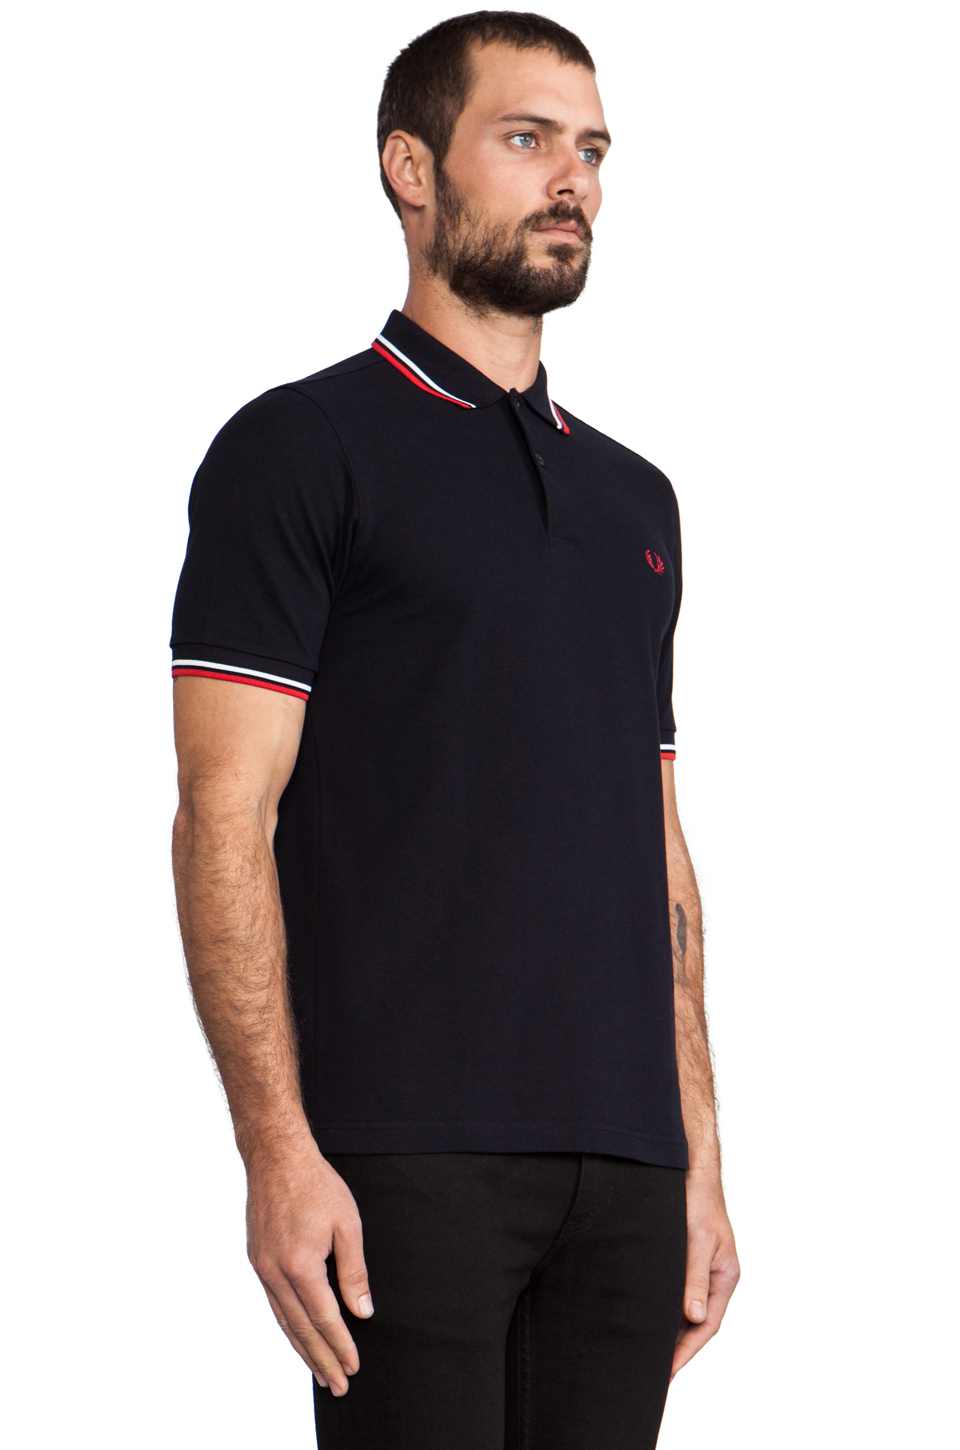 fred perry slim fit twin tipped polo in blue for men navy white red lyst. Black Bedroom Furniture Sets. Home Design Ideas